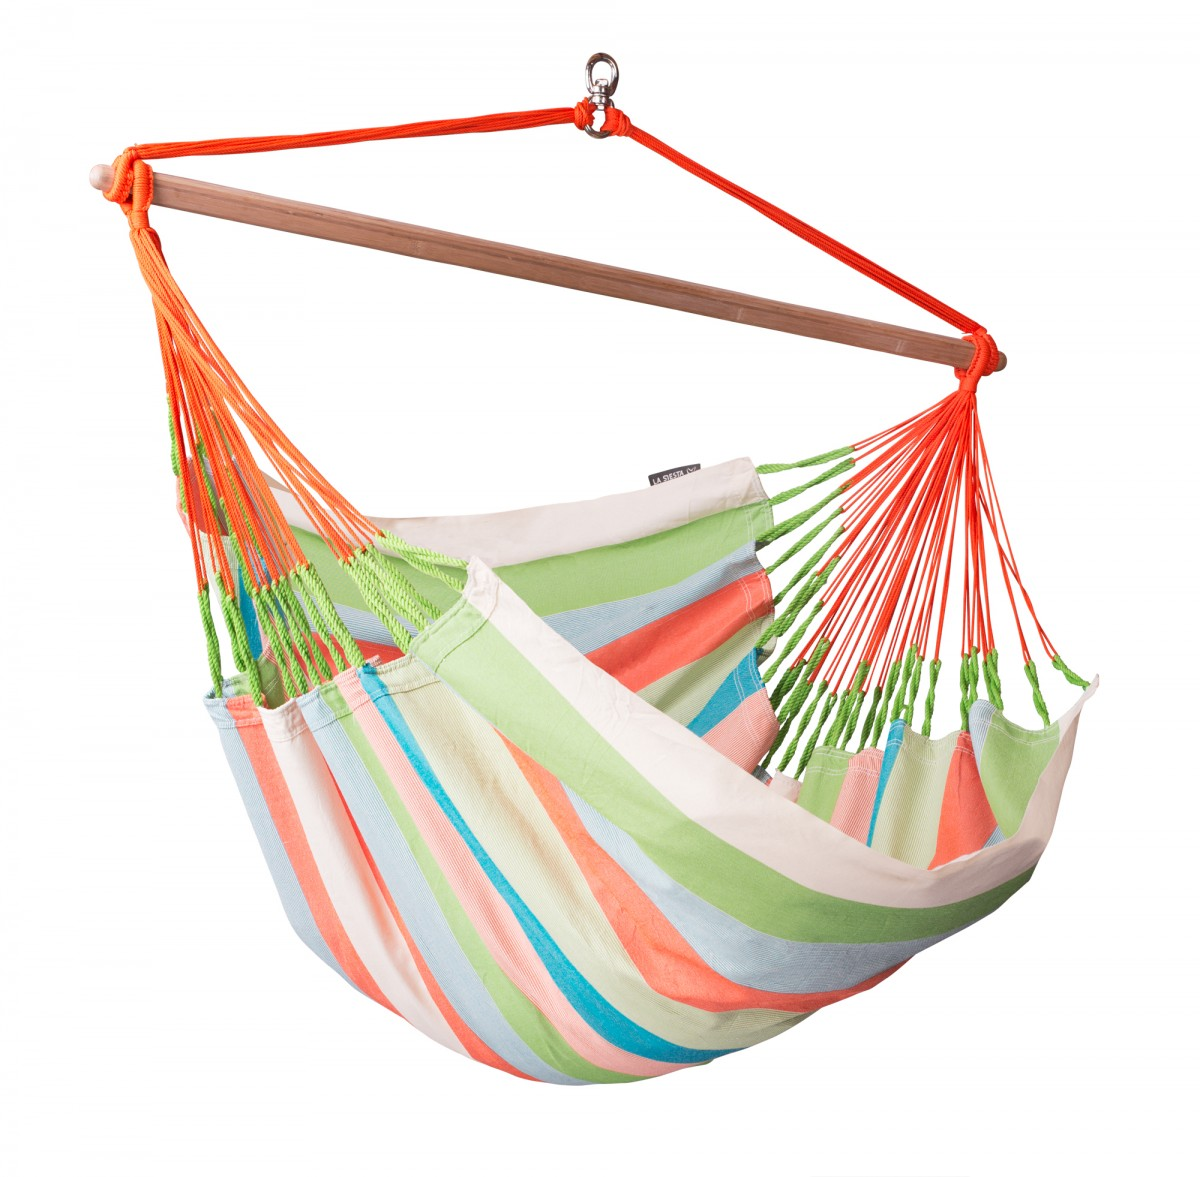 La Siesta Hammock Chair Lounger - Domingo Coral